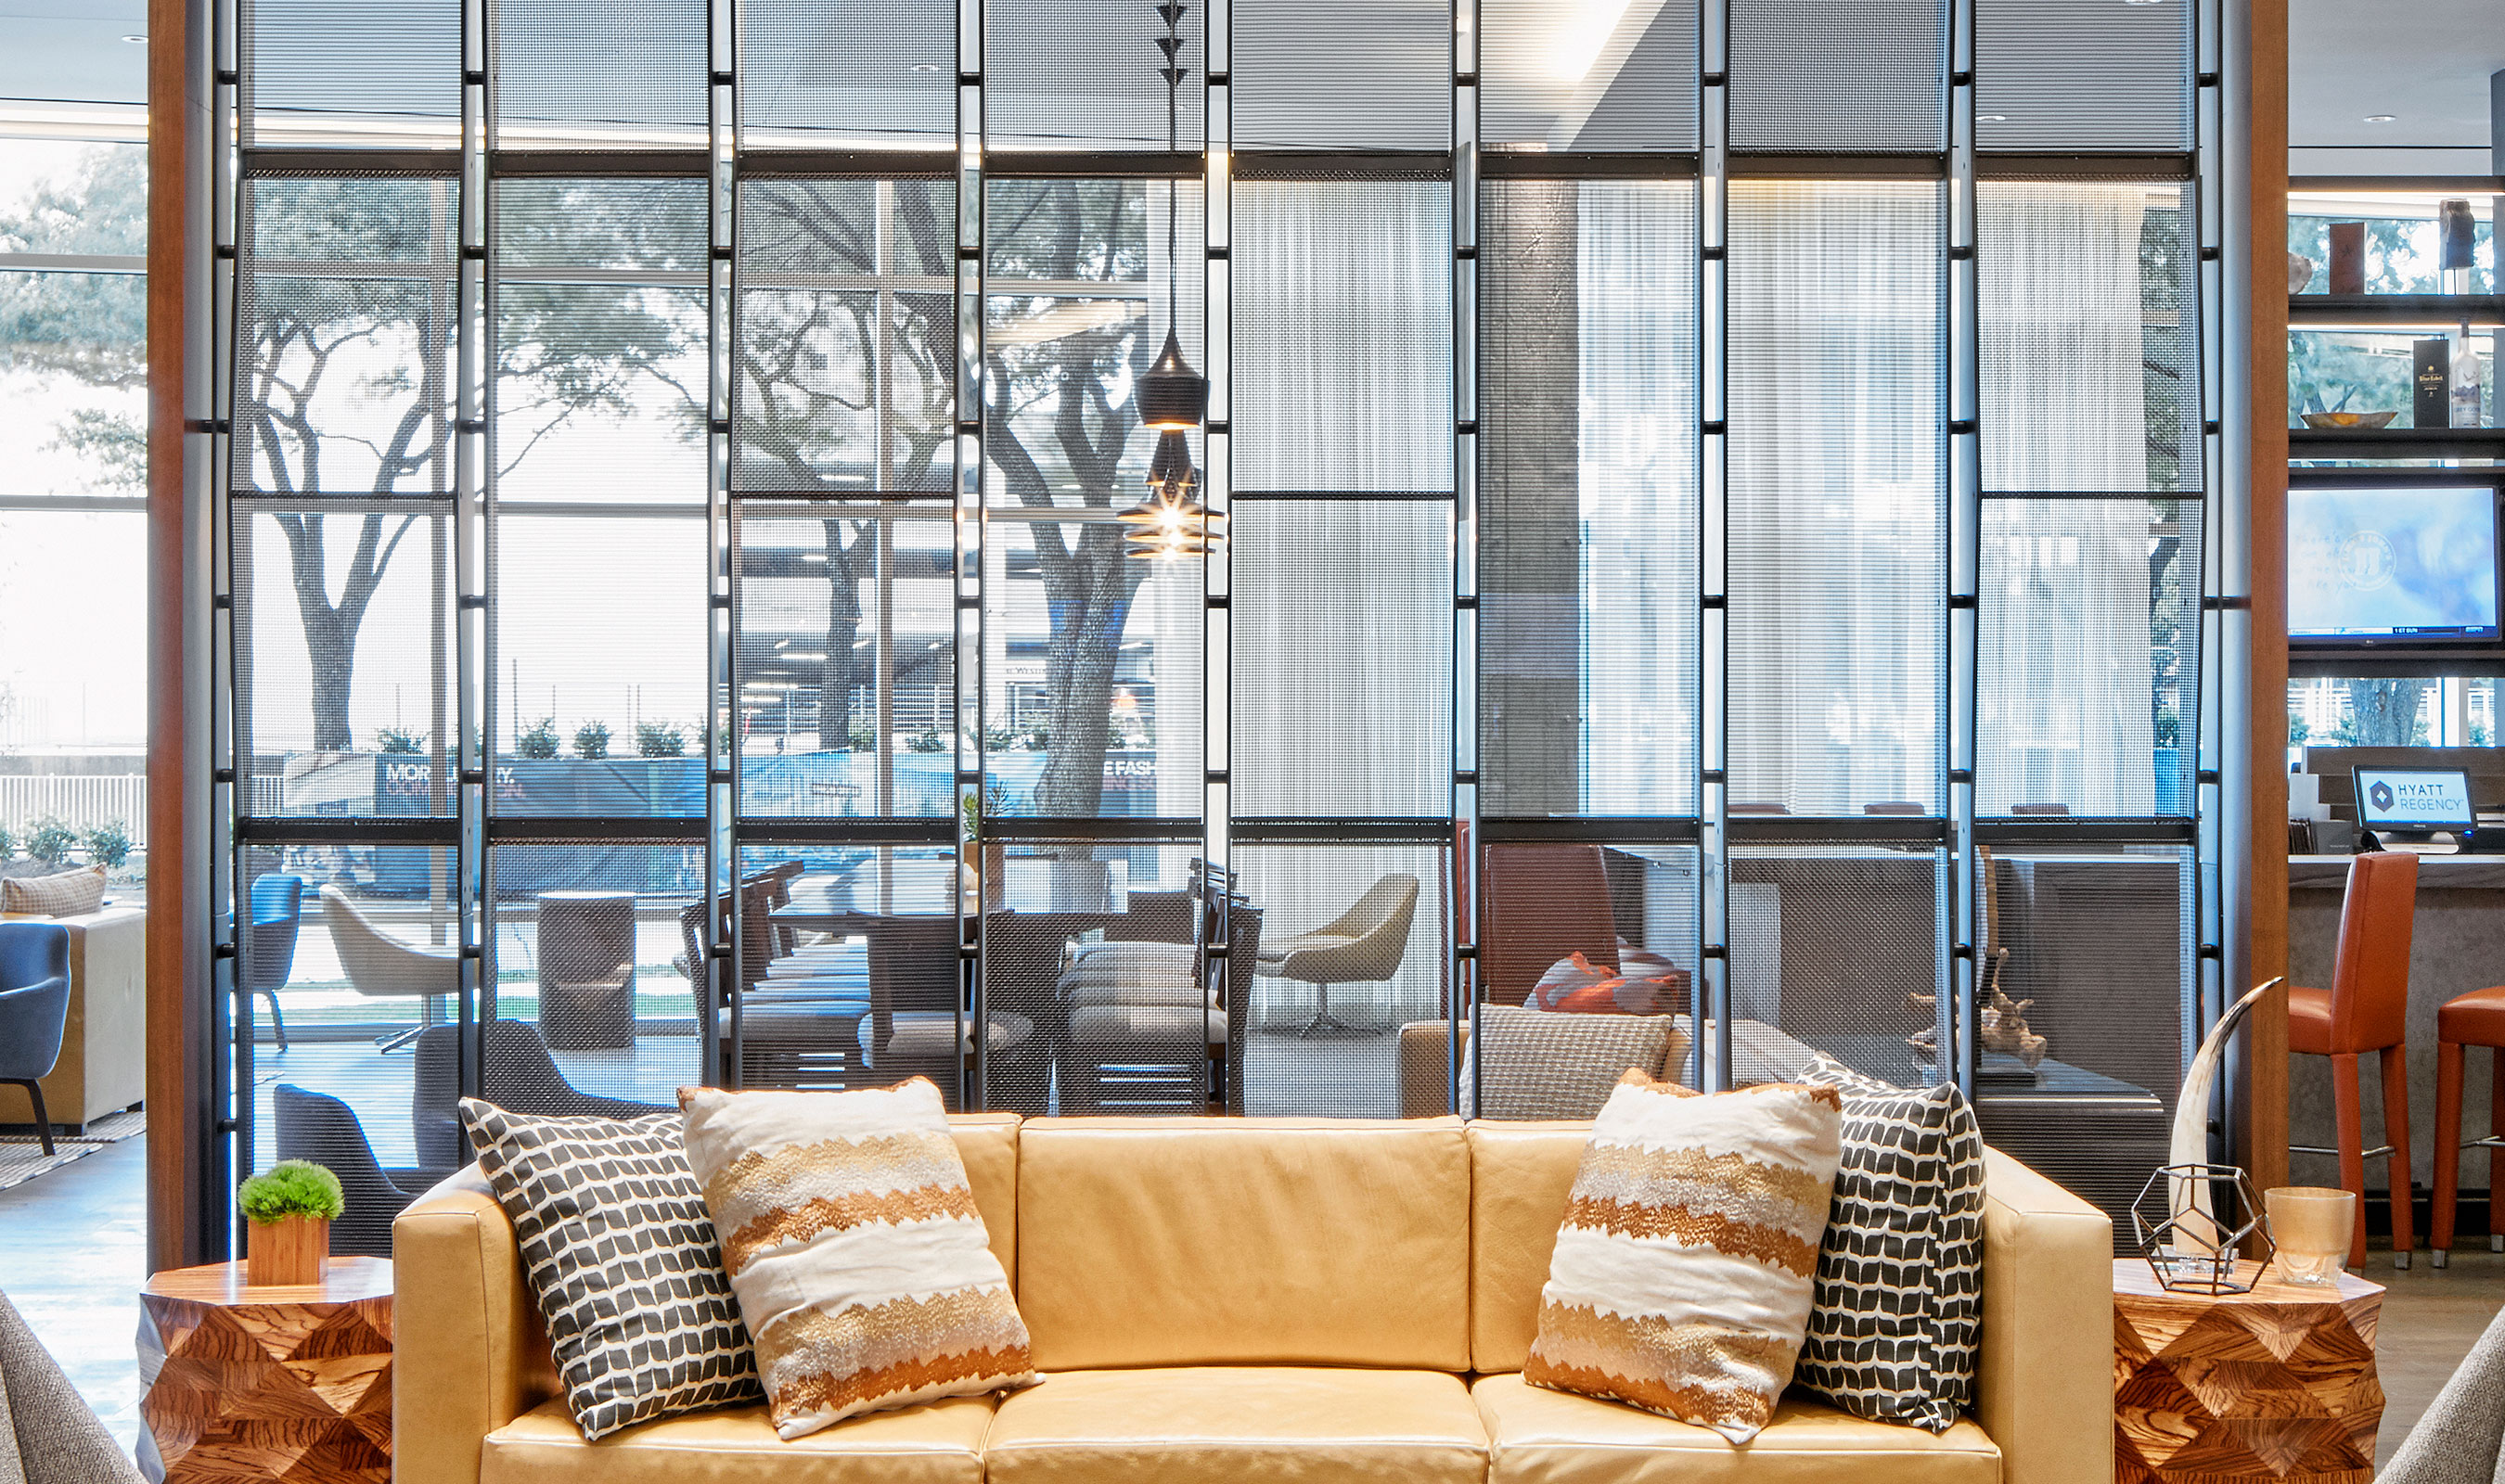 Banker Wire's IPZ-25 and P-282 are used as a stunning space divider in the lobby of the Hyatt Regency Houston Galleria.